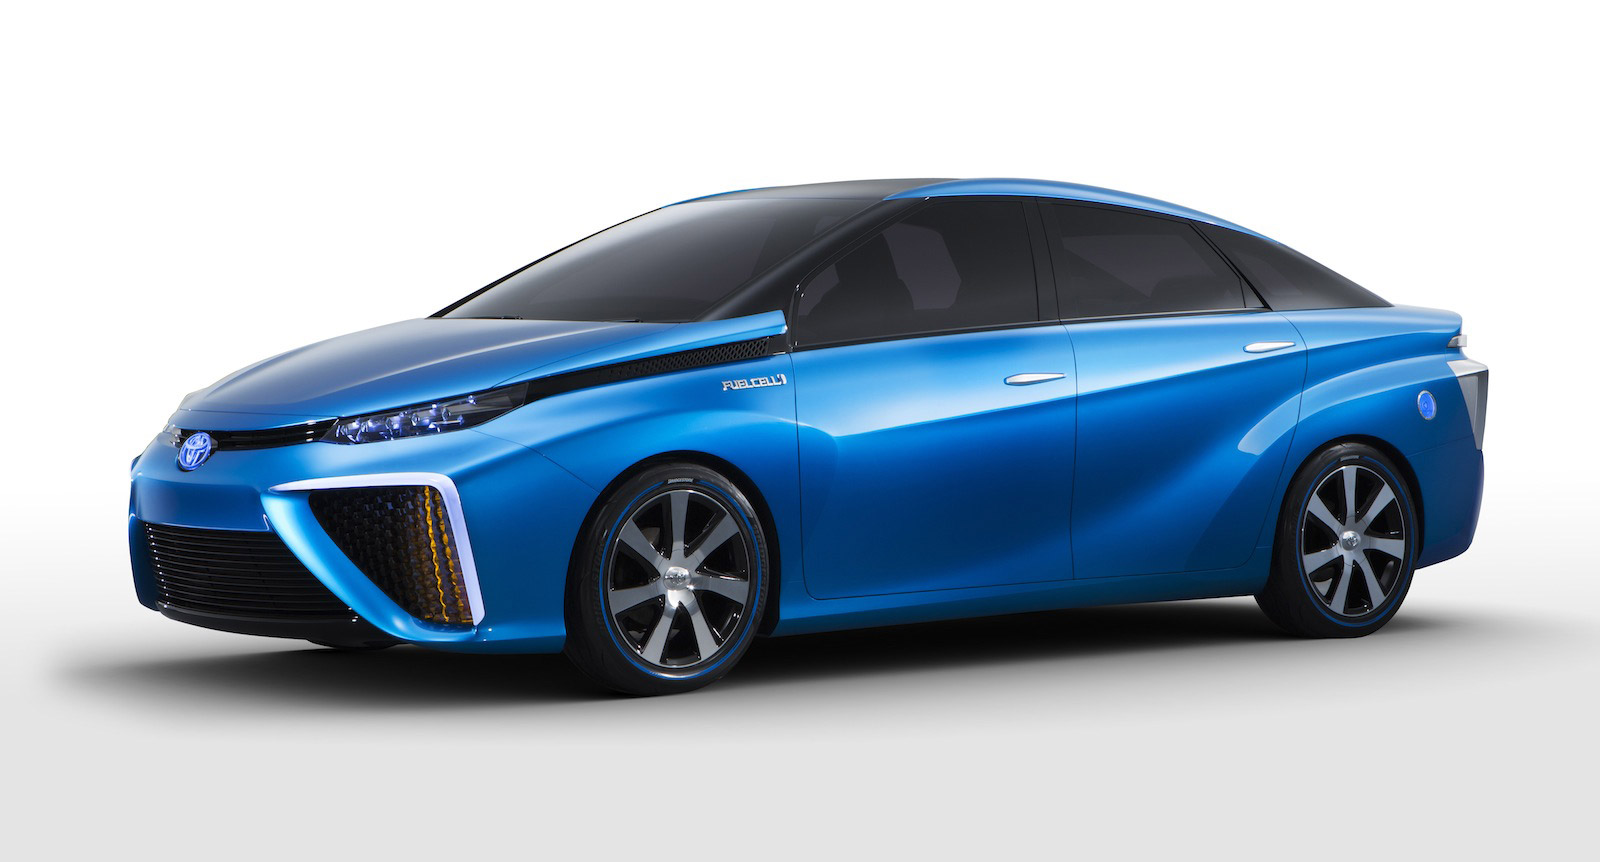 Cars Price Hydrogen Fuel Cell Cars Price Competitive With Electrics By 2030